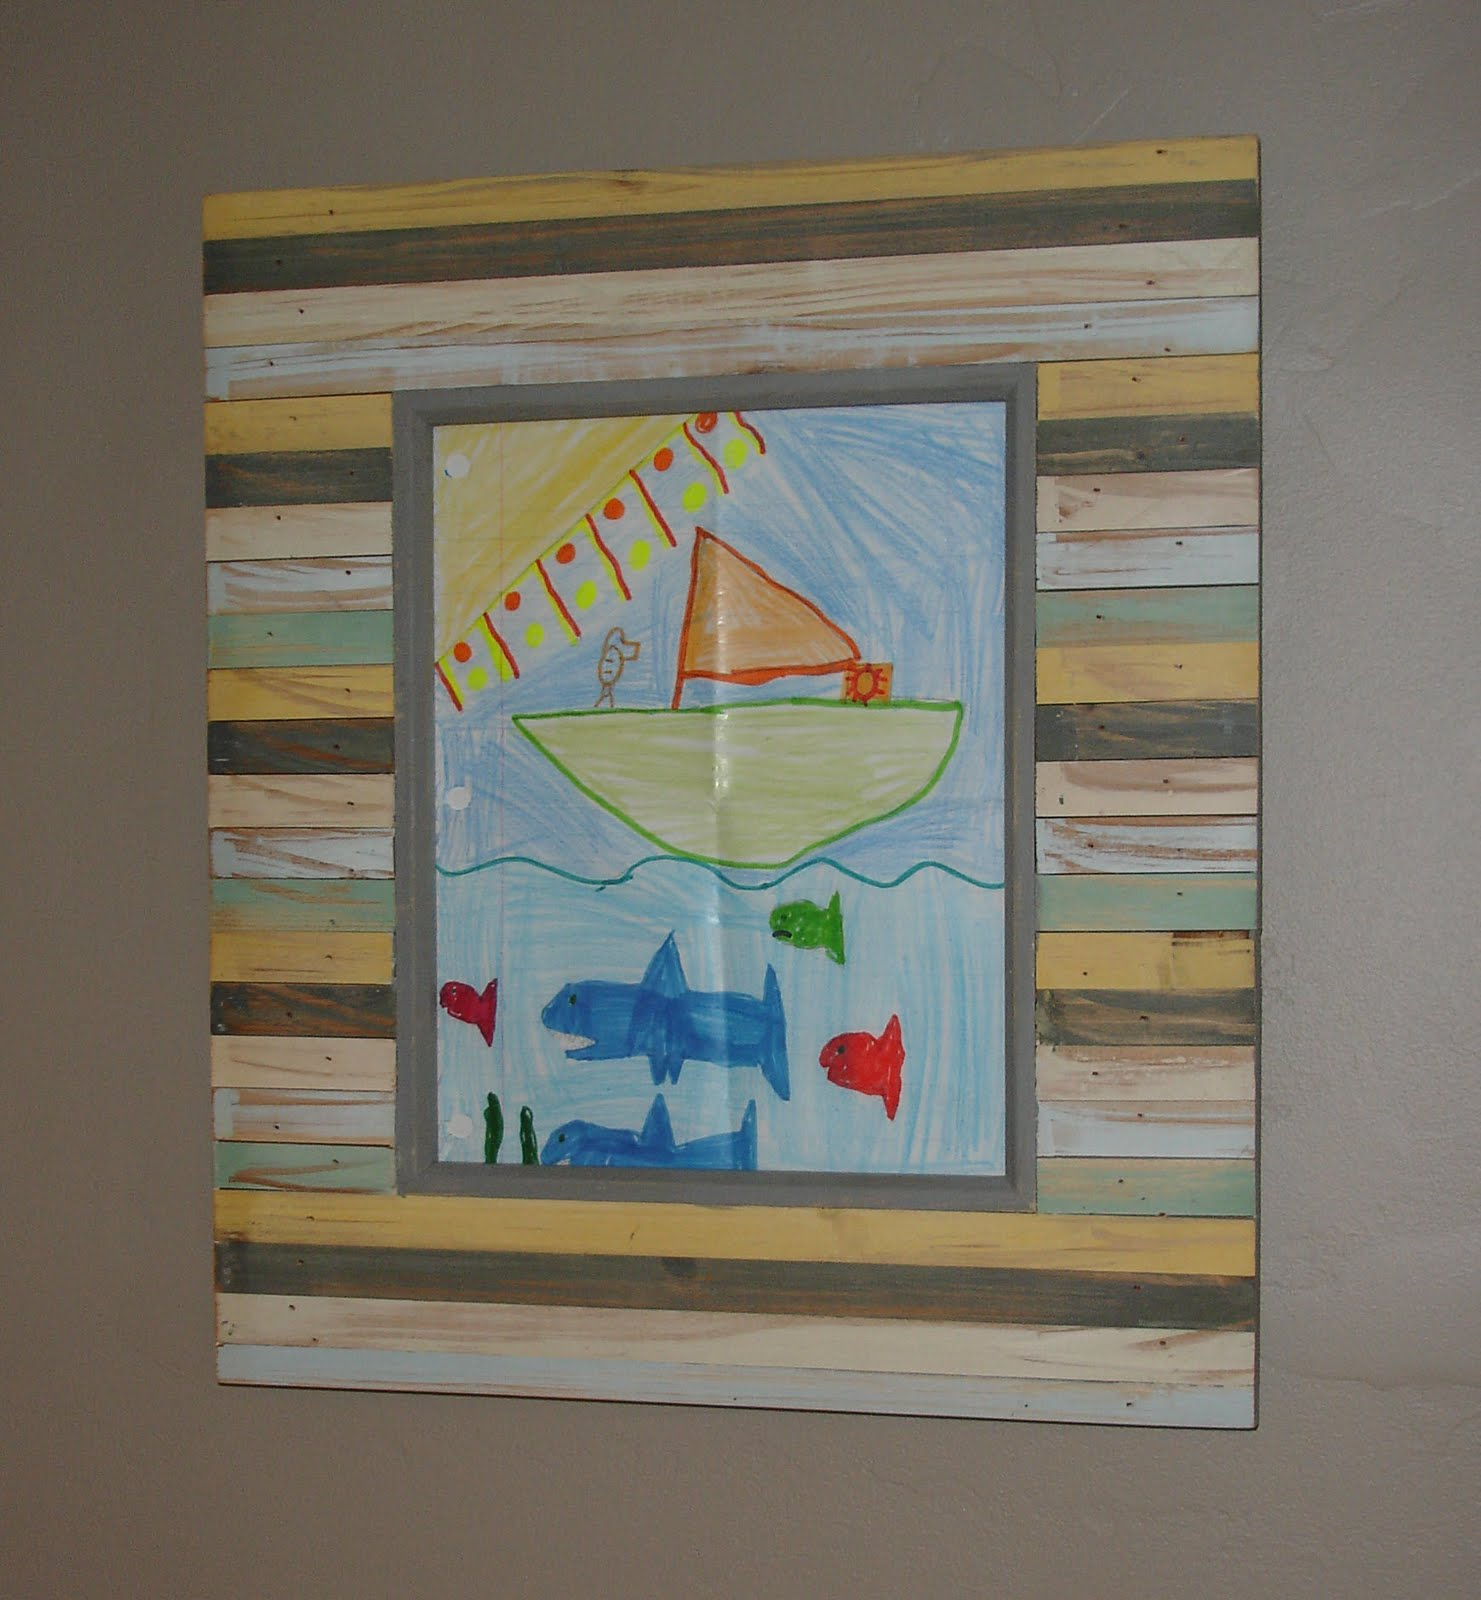 Inexpensive Art loft & cottage: tuesday tip: inexpensive art thanks to the kiddies